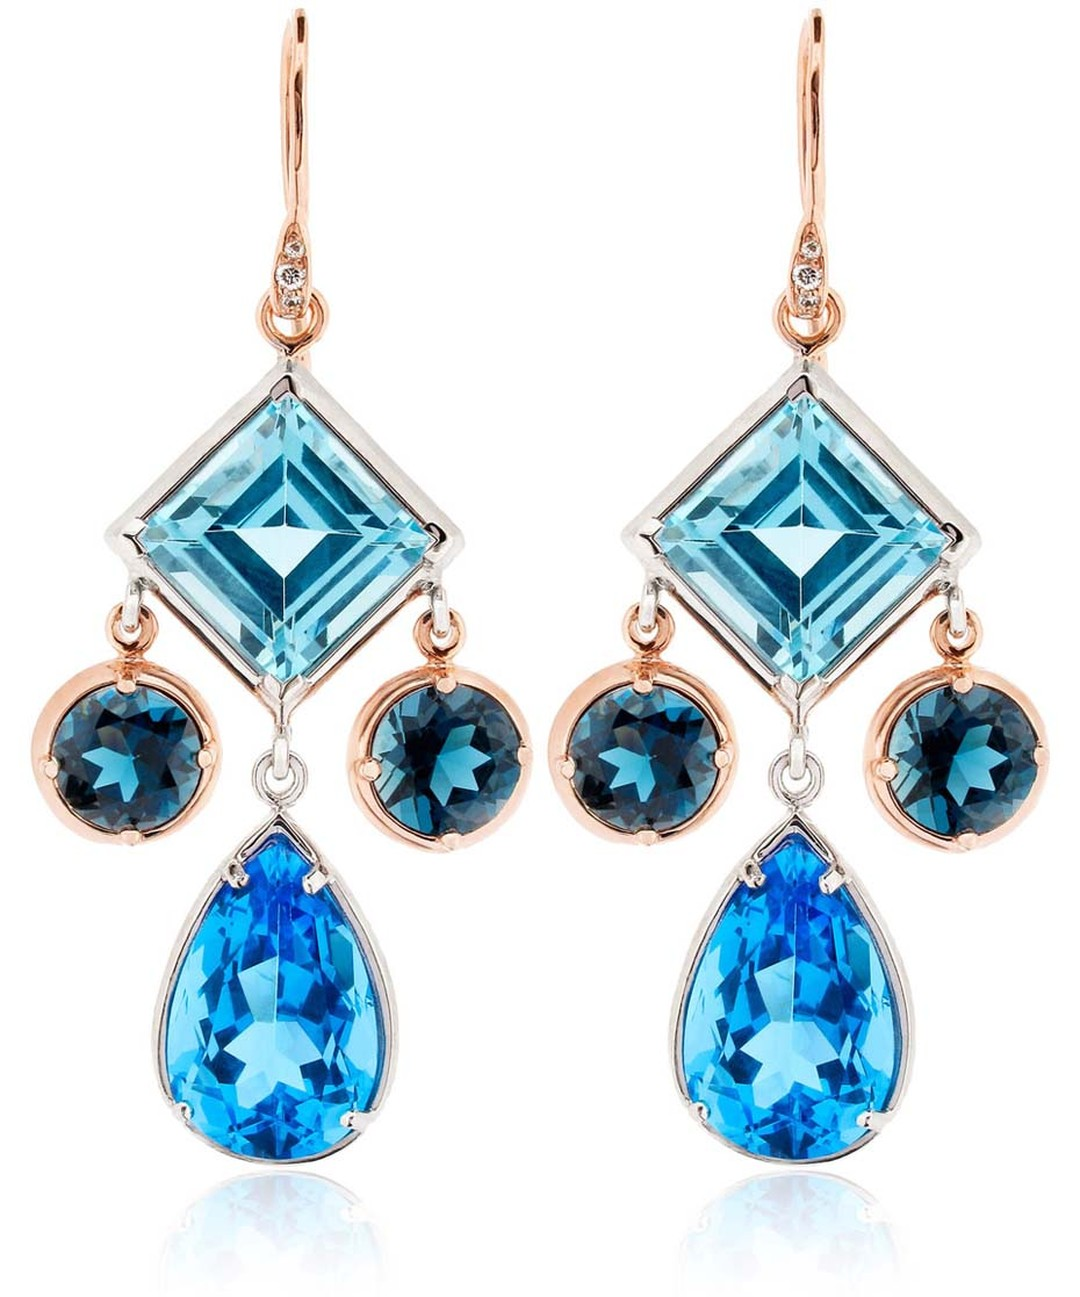 Dinny Hall Amelie Anniversary earrings with various hues and shapes of blue topaz (£1,200).